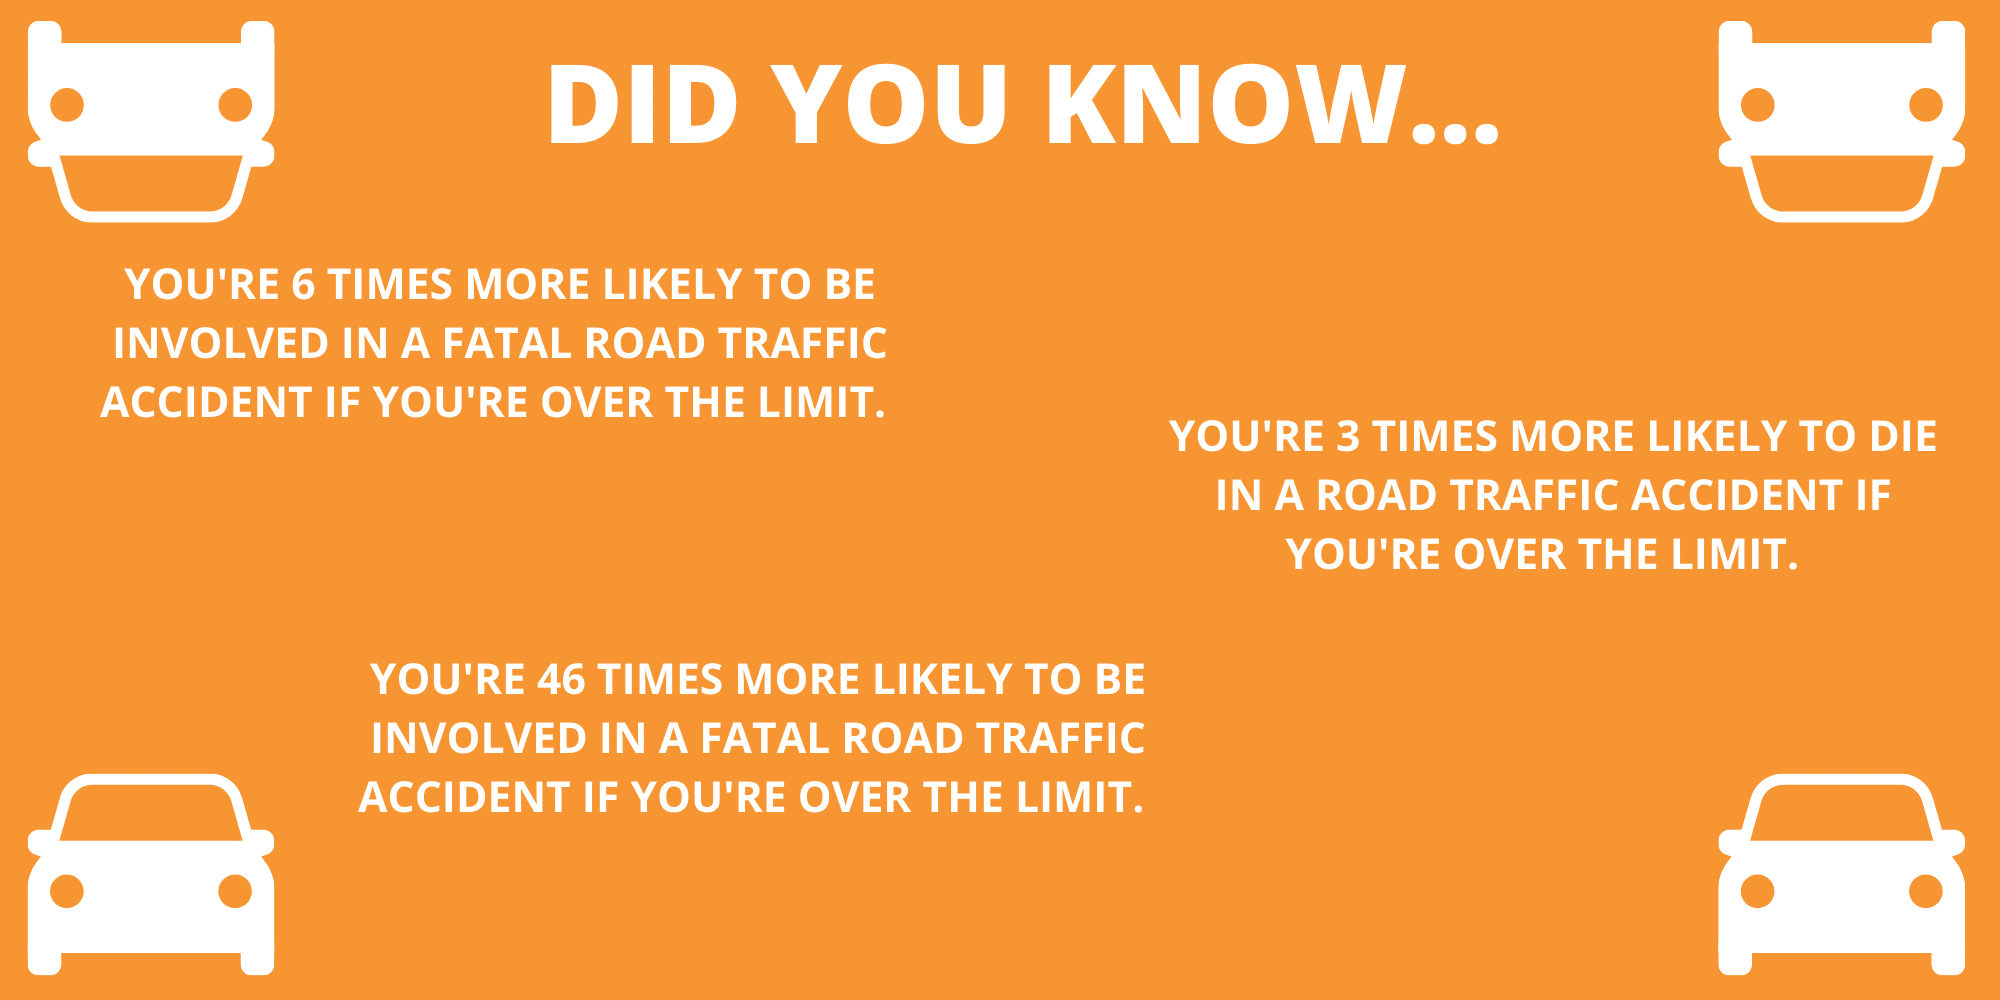 Statistics about drink driving